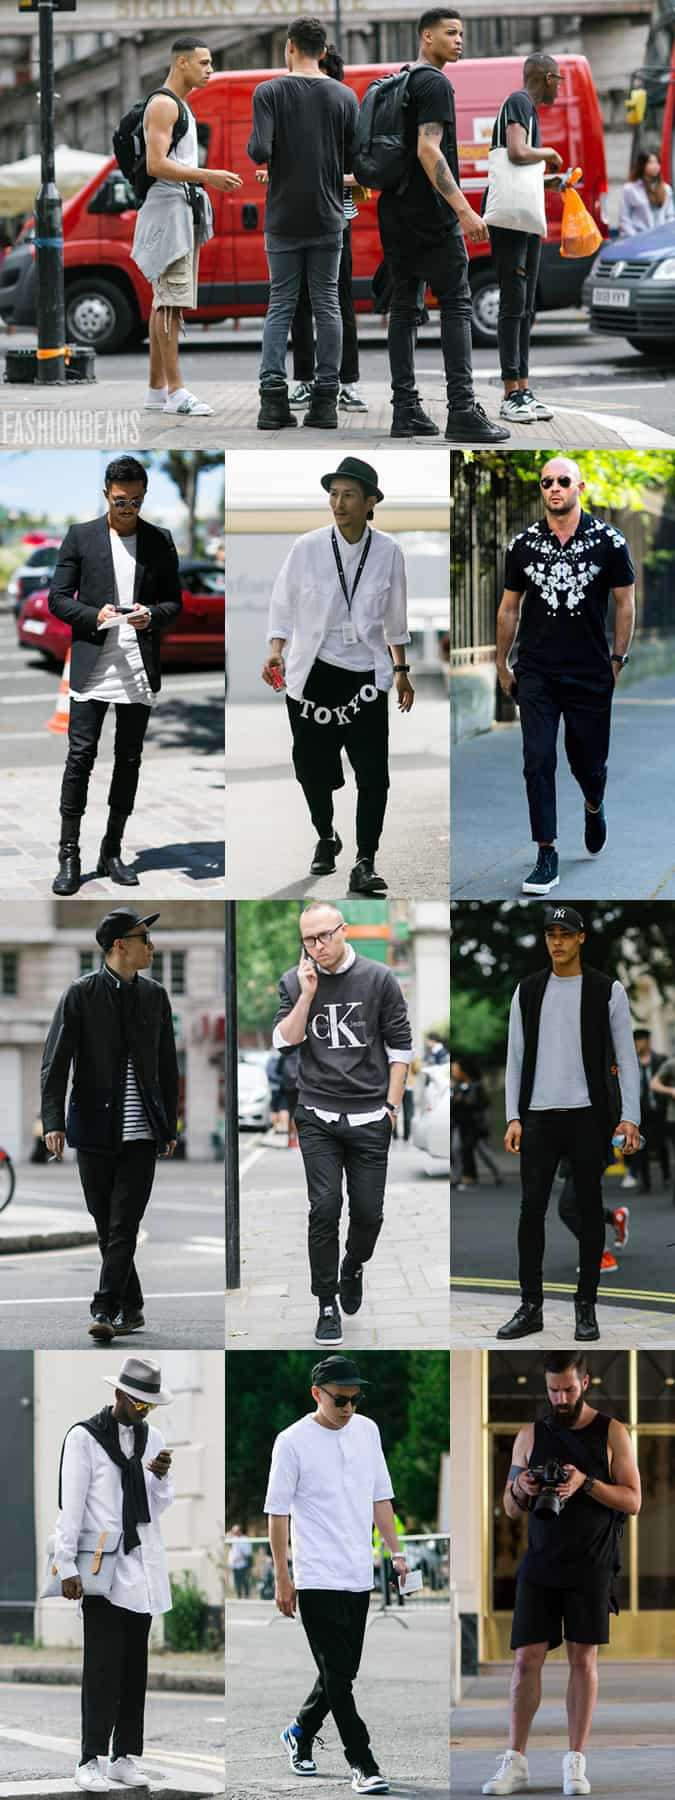 Men's SS16 Street Style Trends - Monochrome and Streetwear Looks